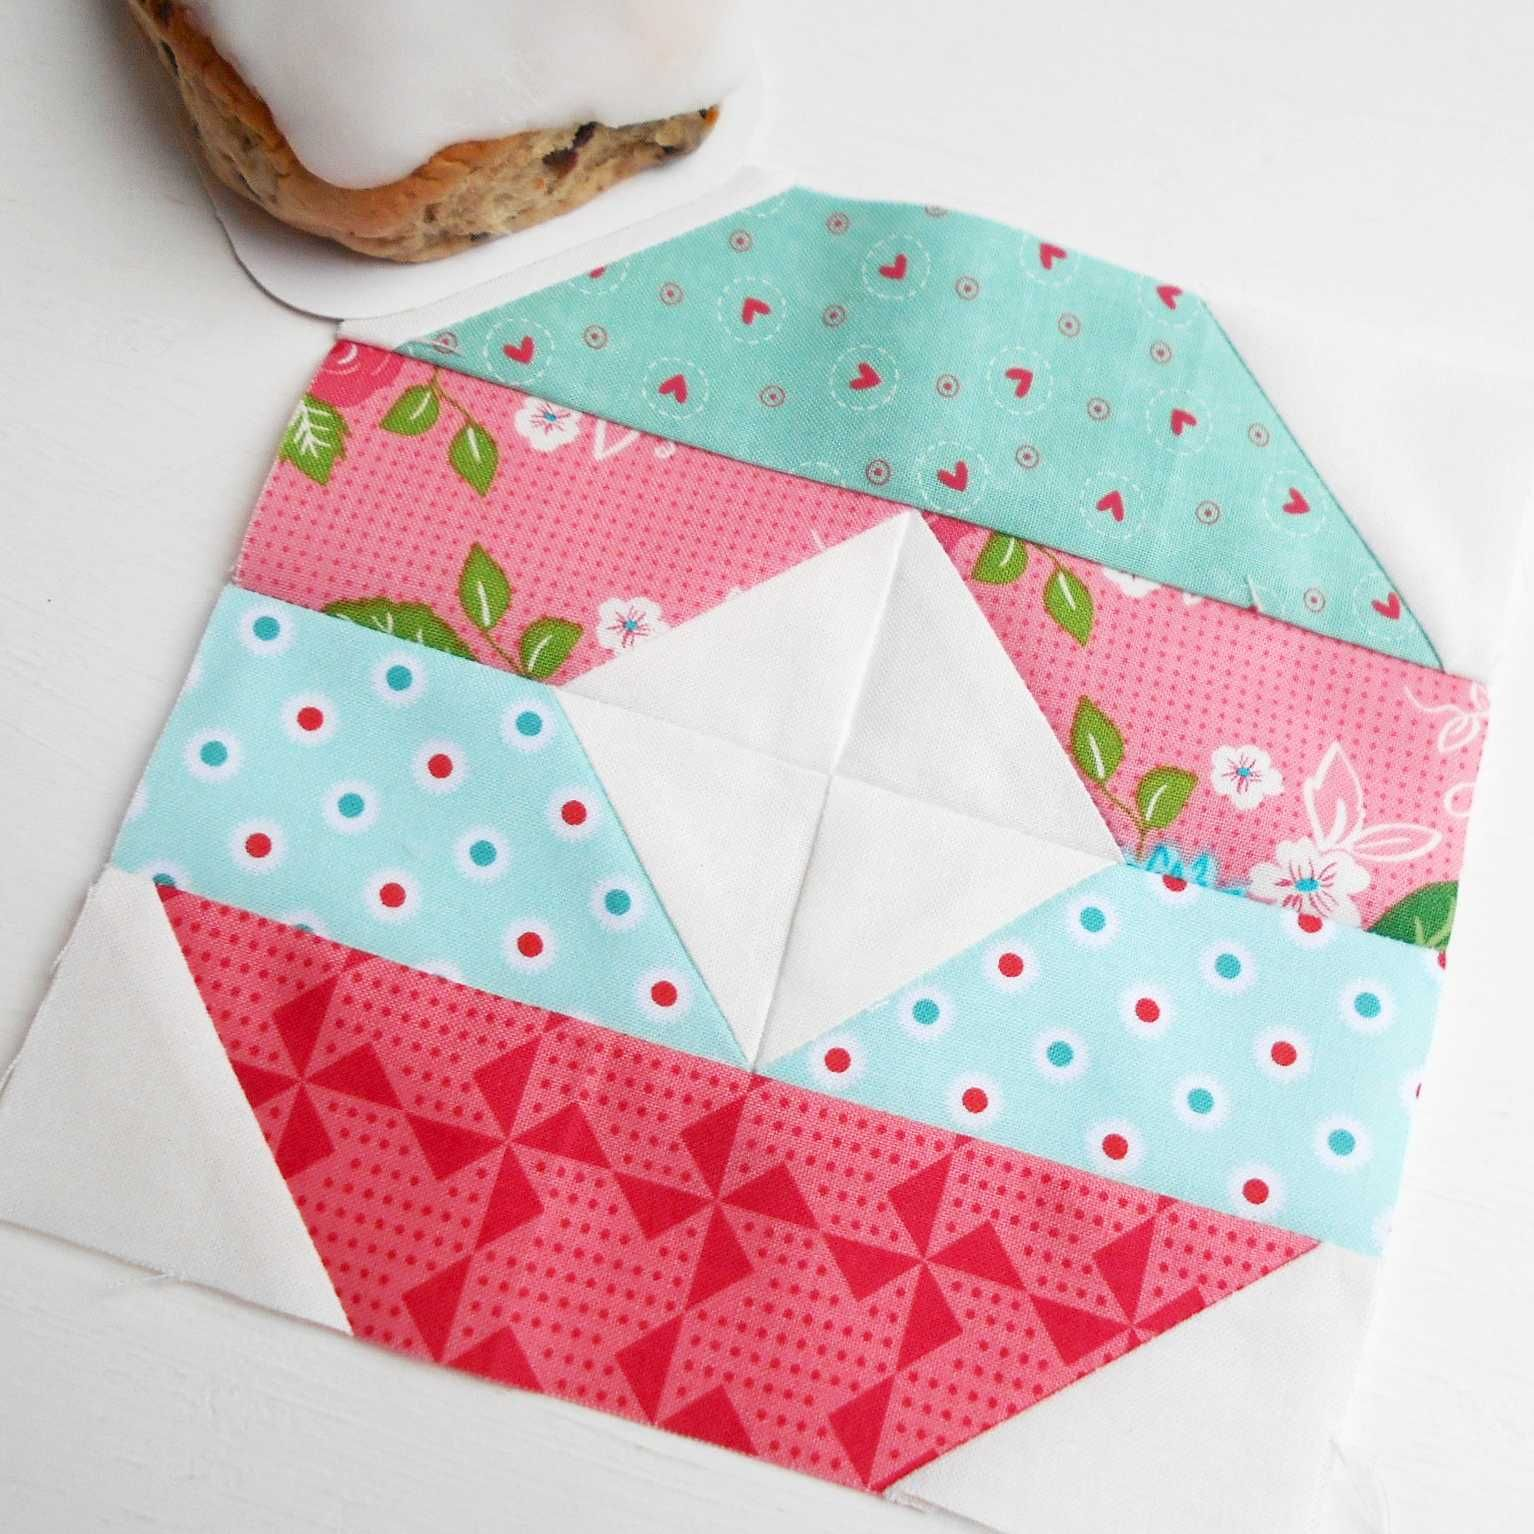 The Splendid Sampler block no. 10 - Iowa.  A simple patchwork block from Sherri McConnell from A Quilting Life.